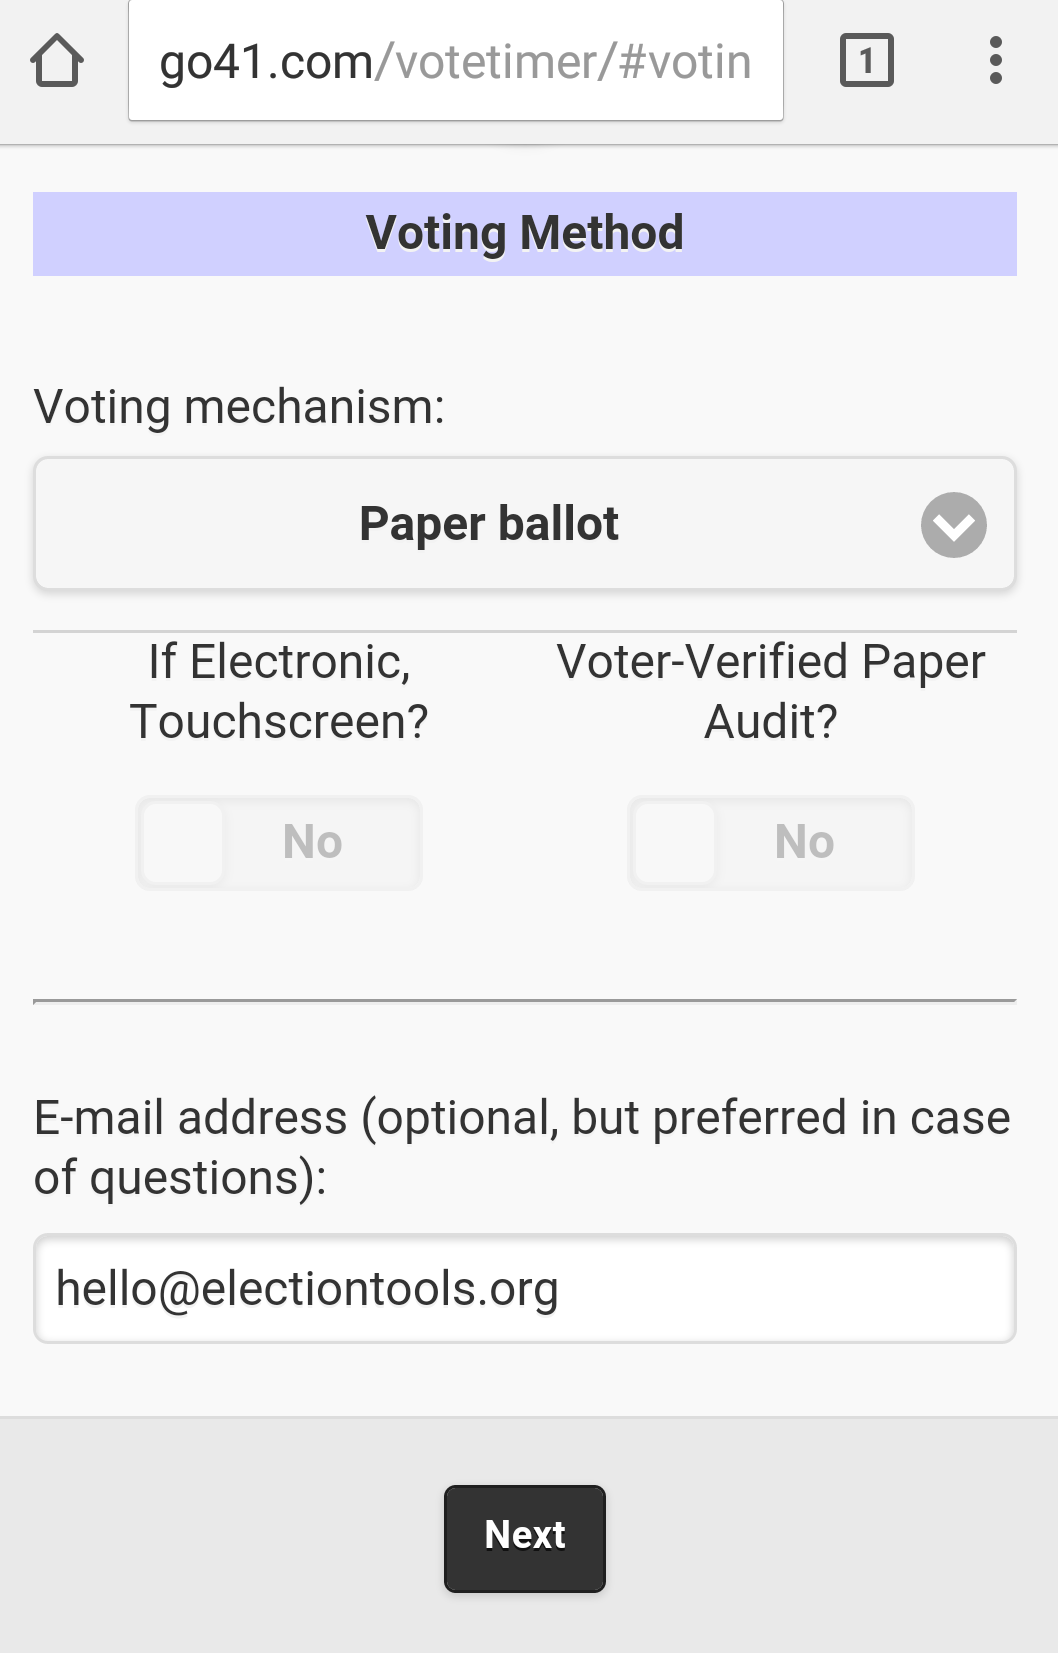 A user has selected the voting mechanism and has entered an email address